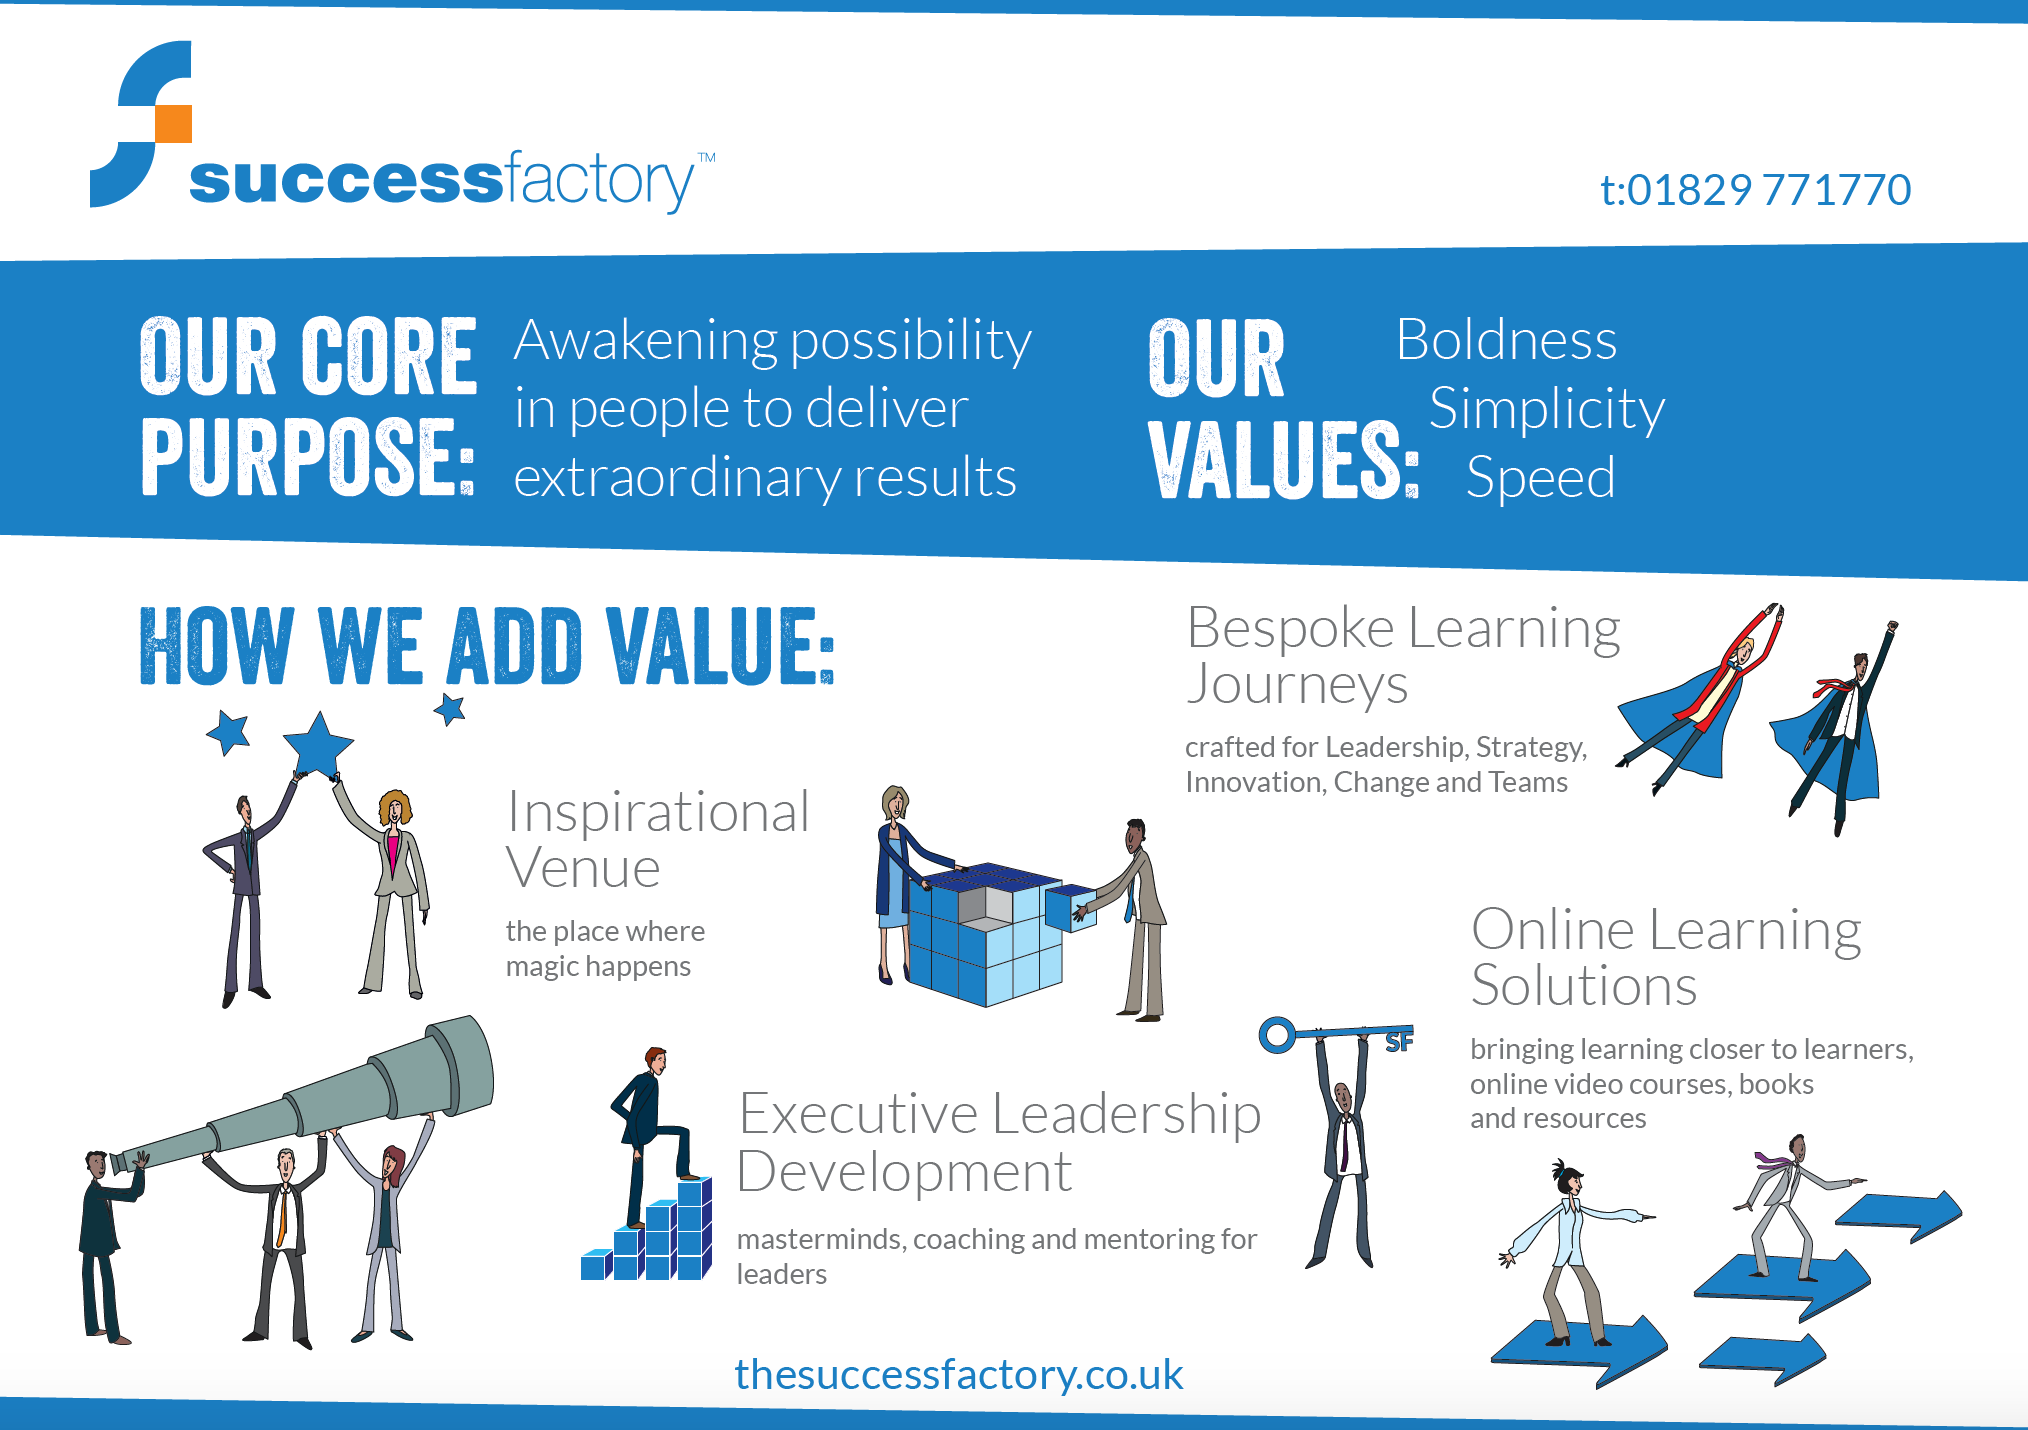 Overview of what Successfactory offer